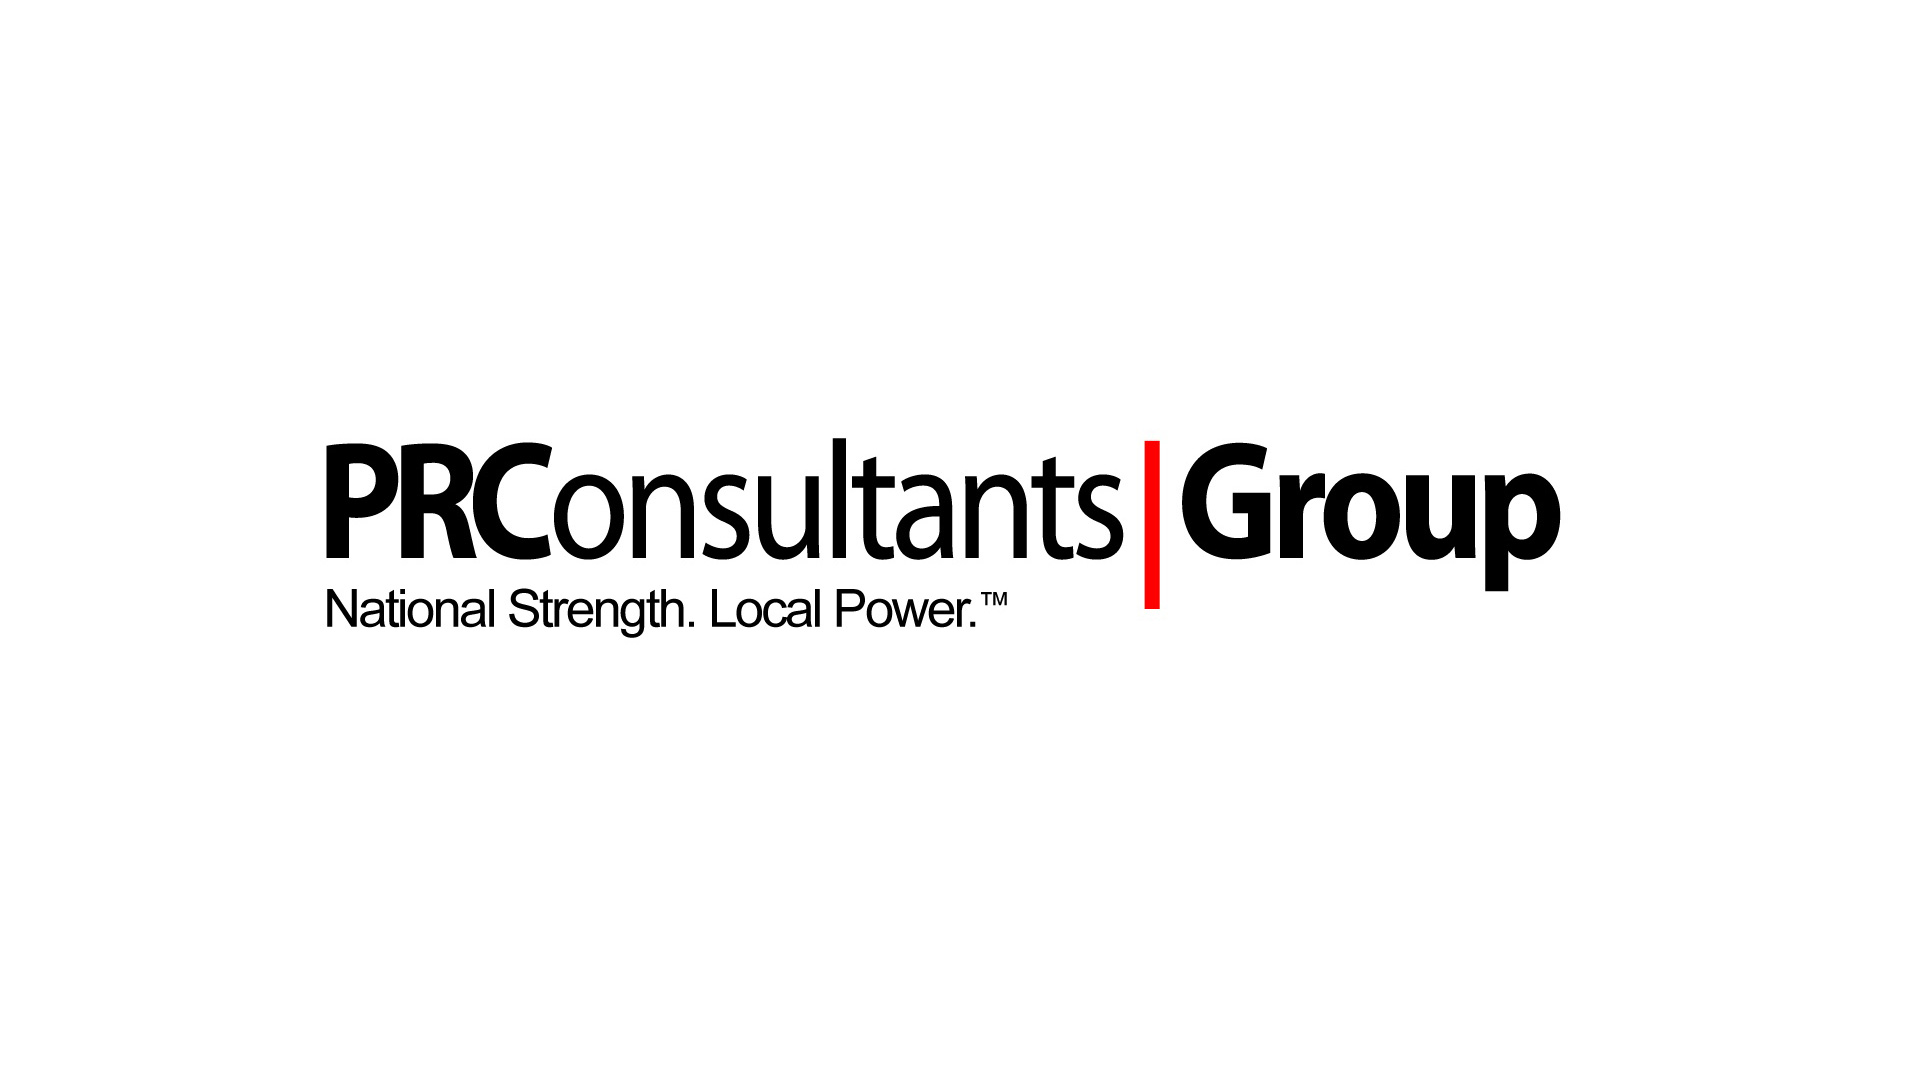 PRConsultants Group Selects The Big Think Group as Puerto Rico Partner and Representative